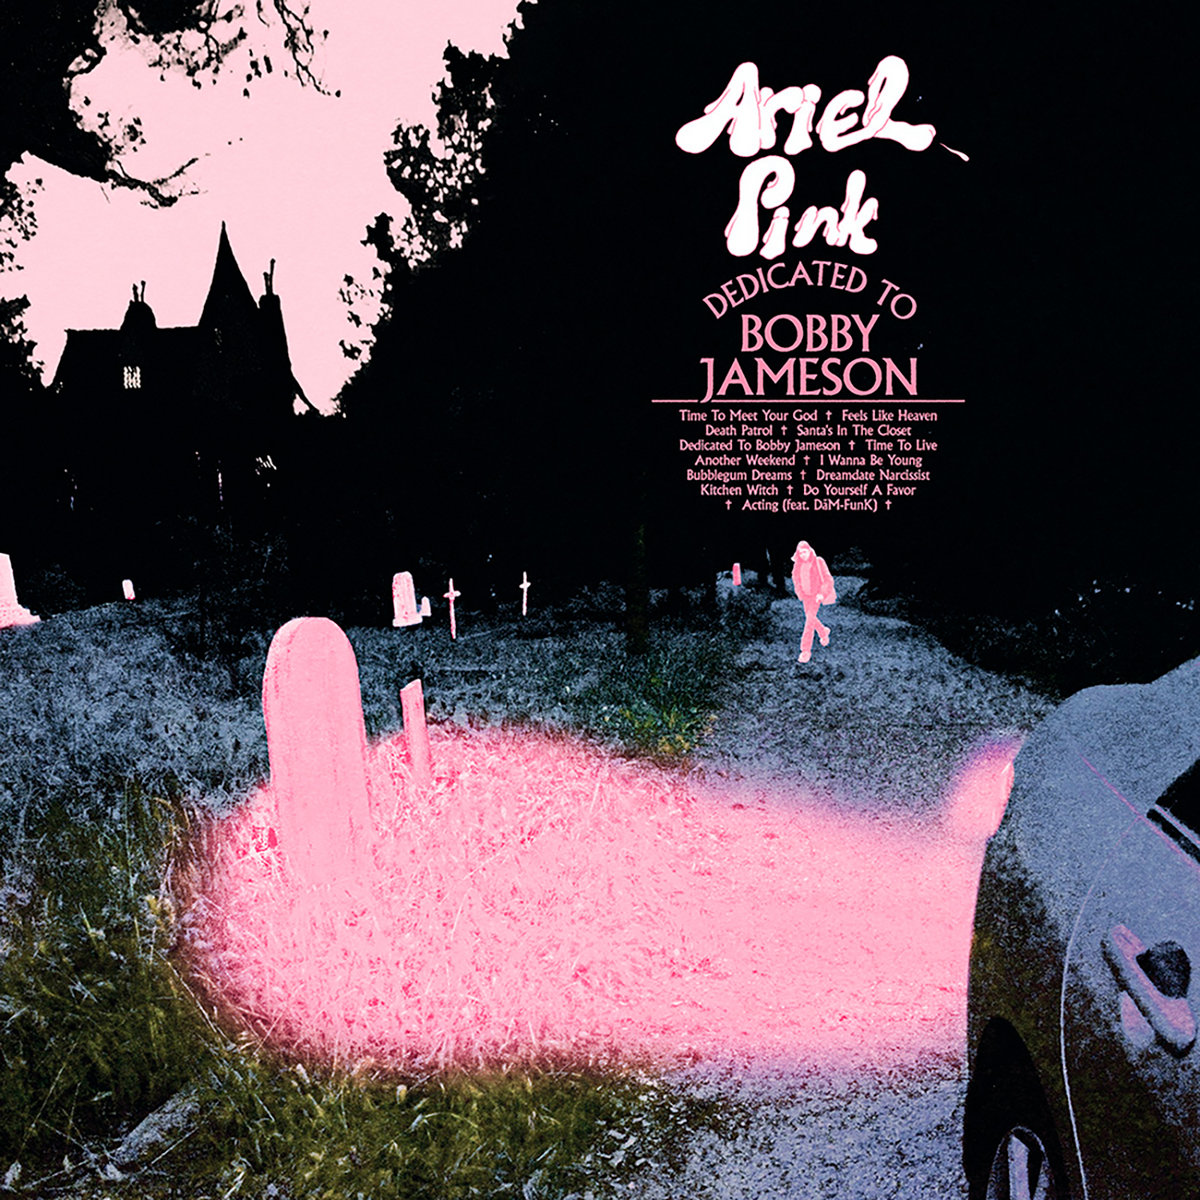 Dedicated to Bobby Jameson Ariel Pink